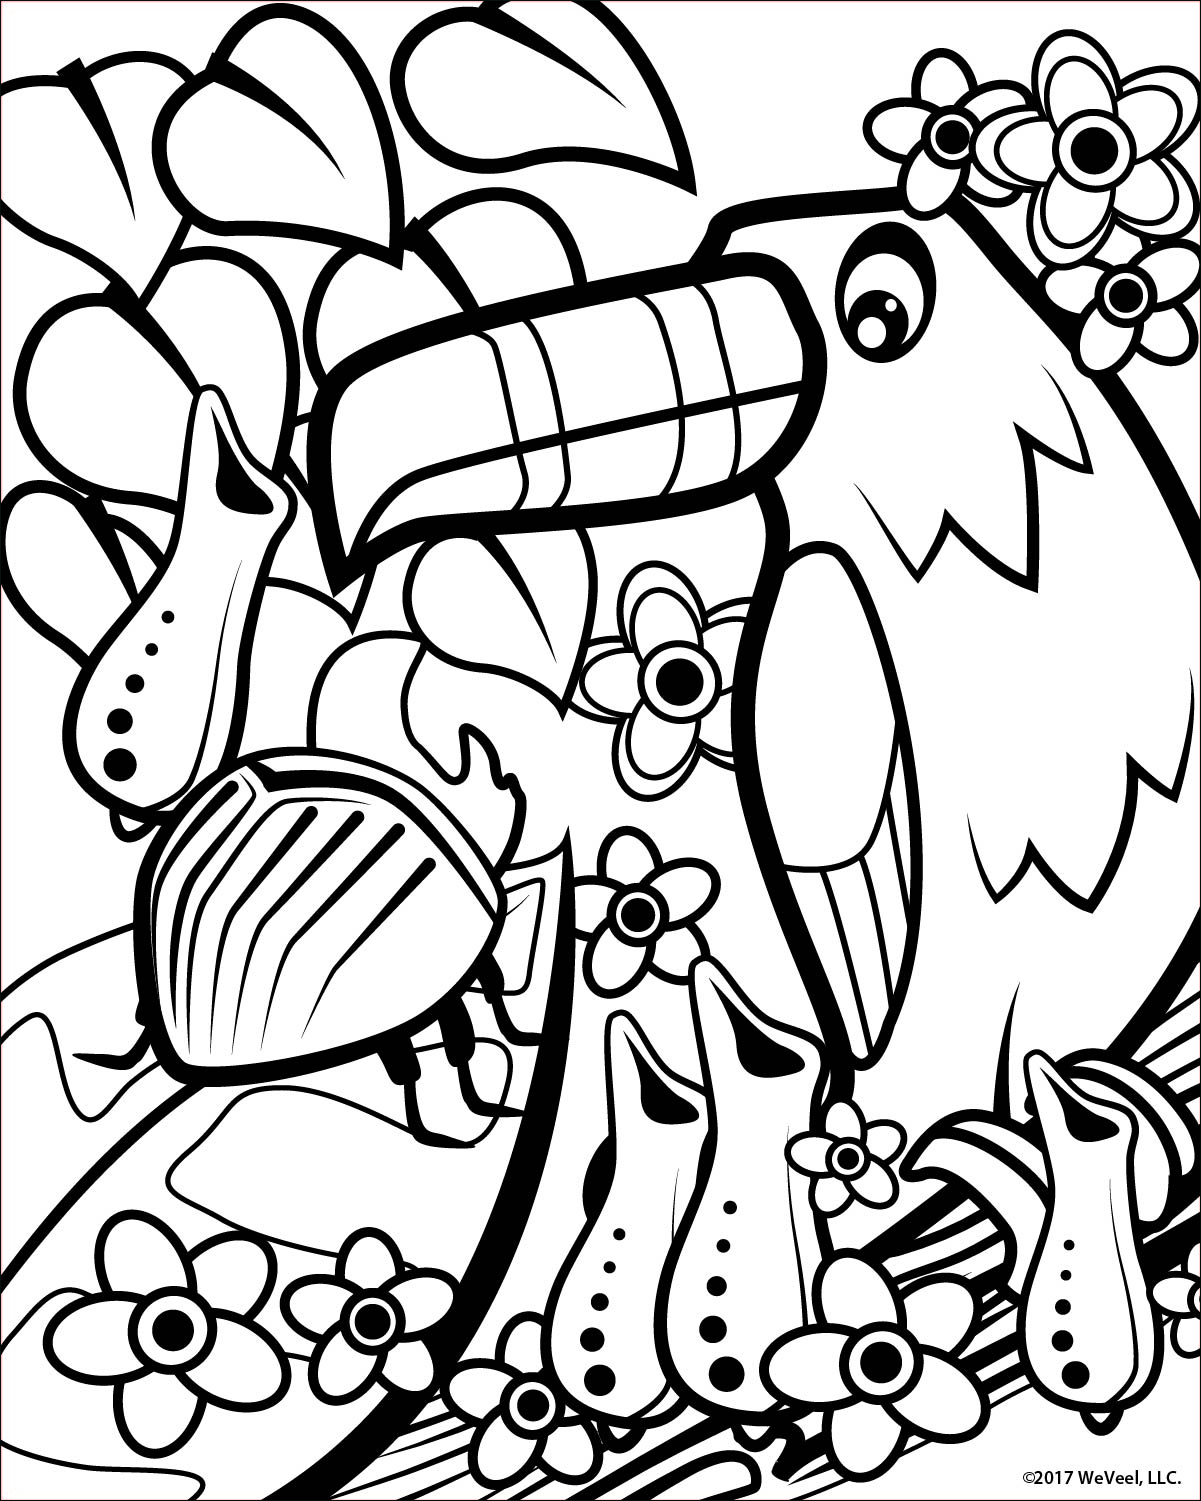 Coloring Pages | Scentos